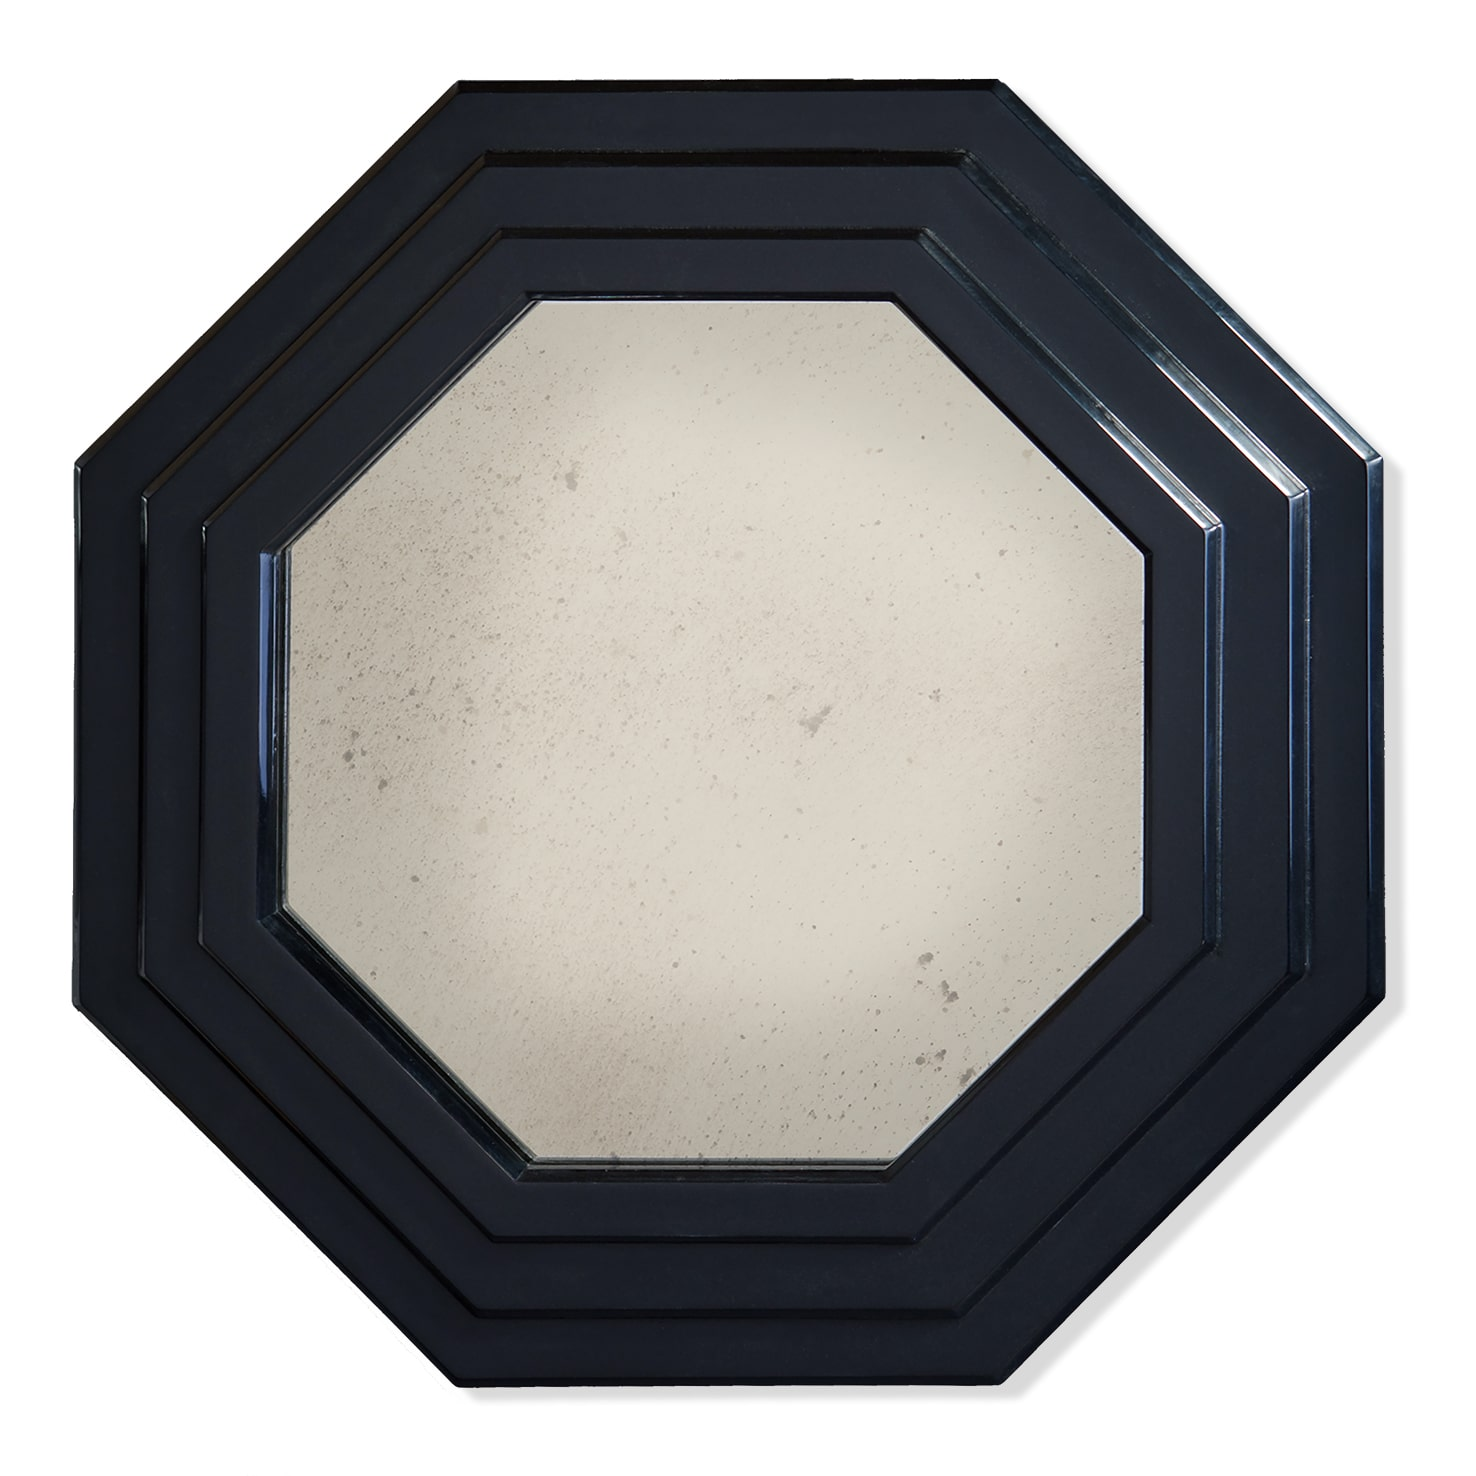 The Chailey Octagonal in Black Lacquer